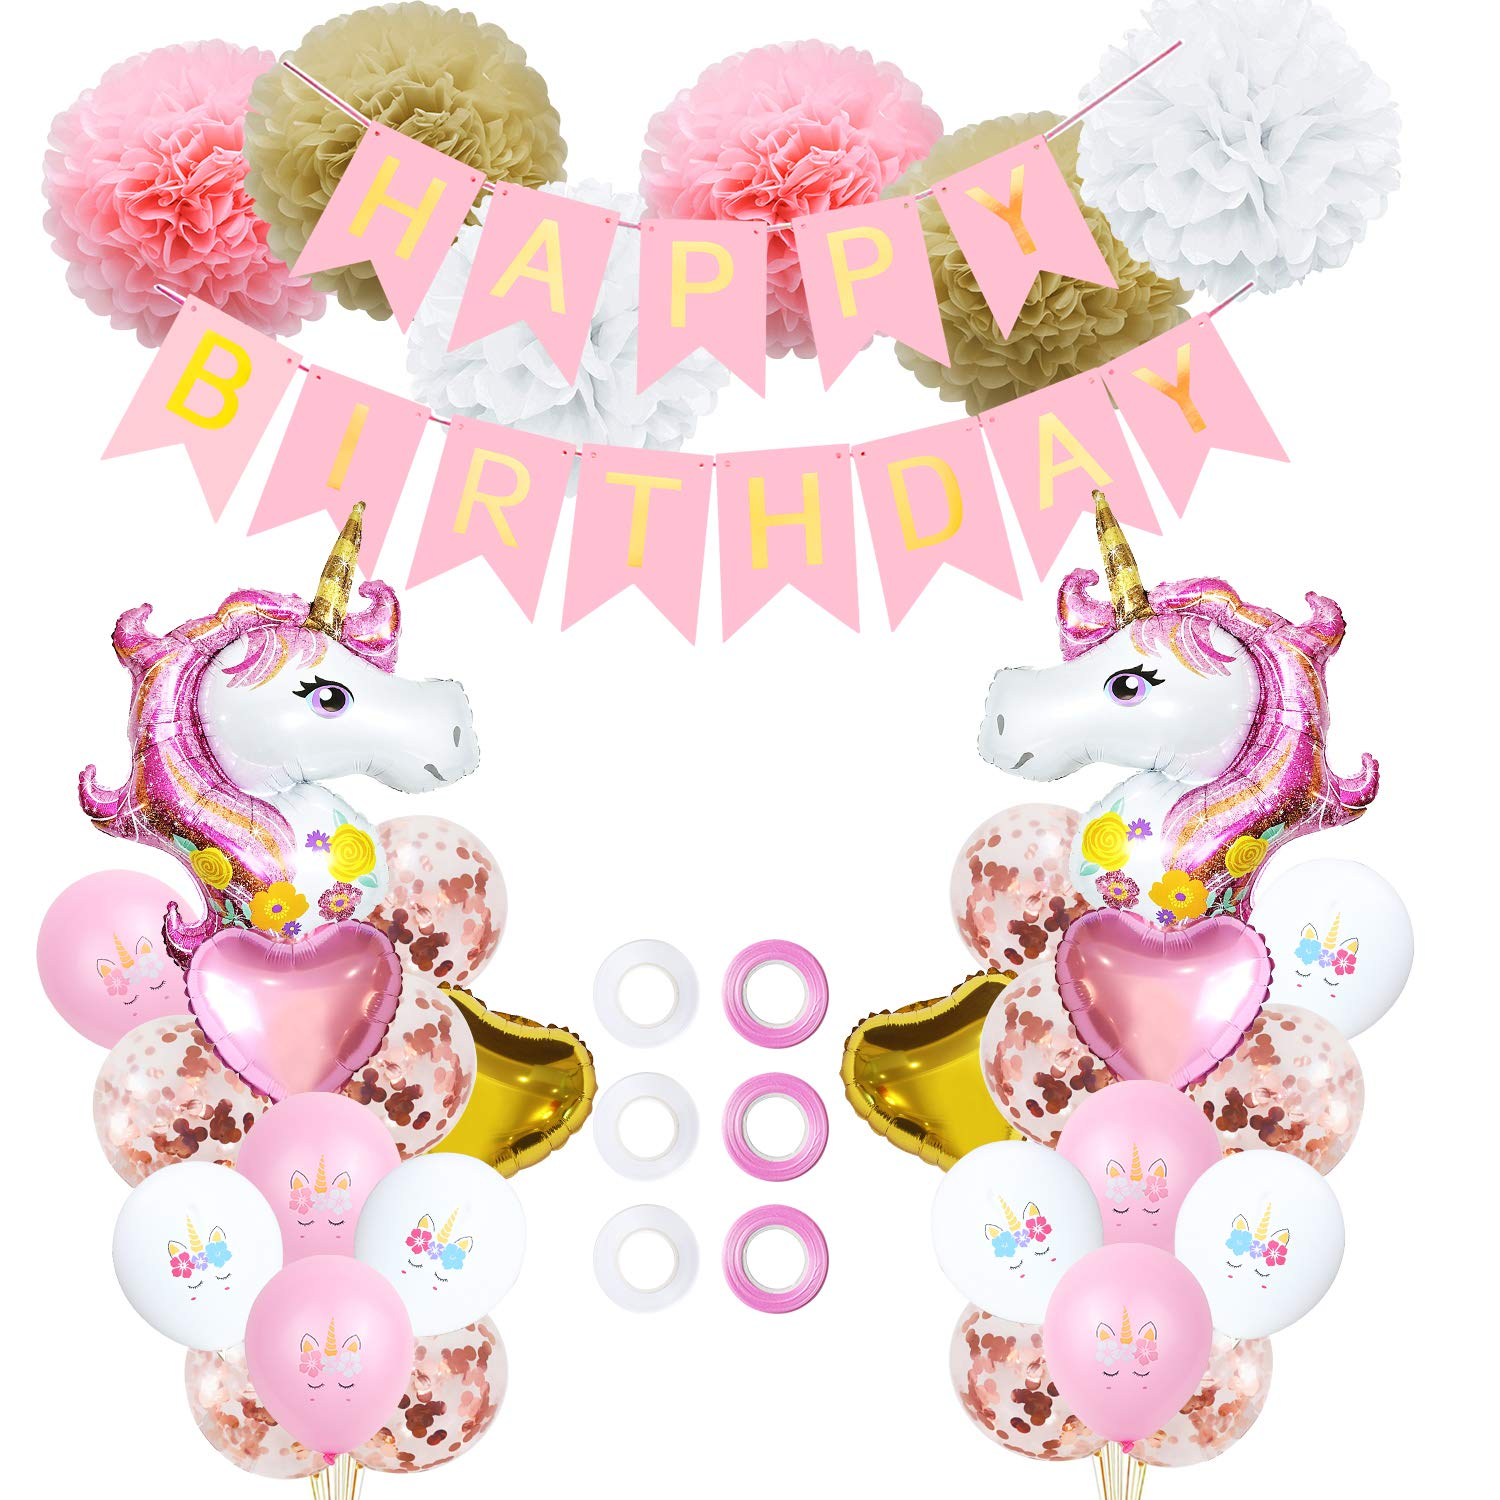 Unicorn Balloons Birthday Party Decorations By Ll Fashion House 39 Pcs Unicorn Birthday Party Supply Kit